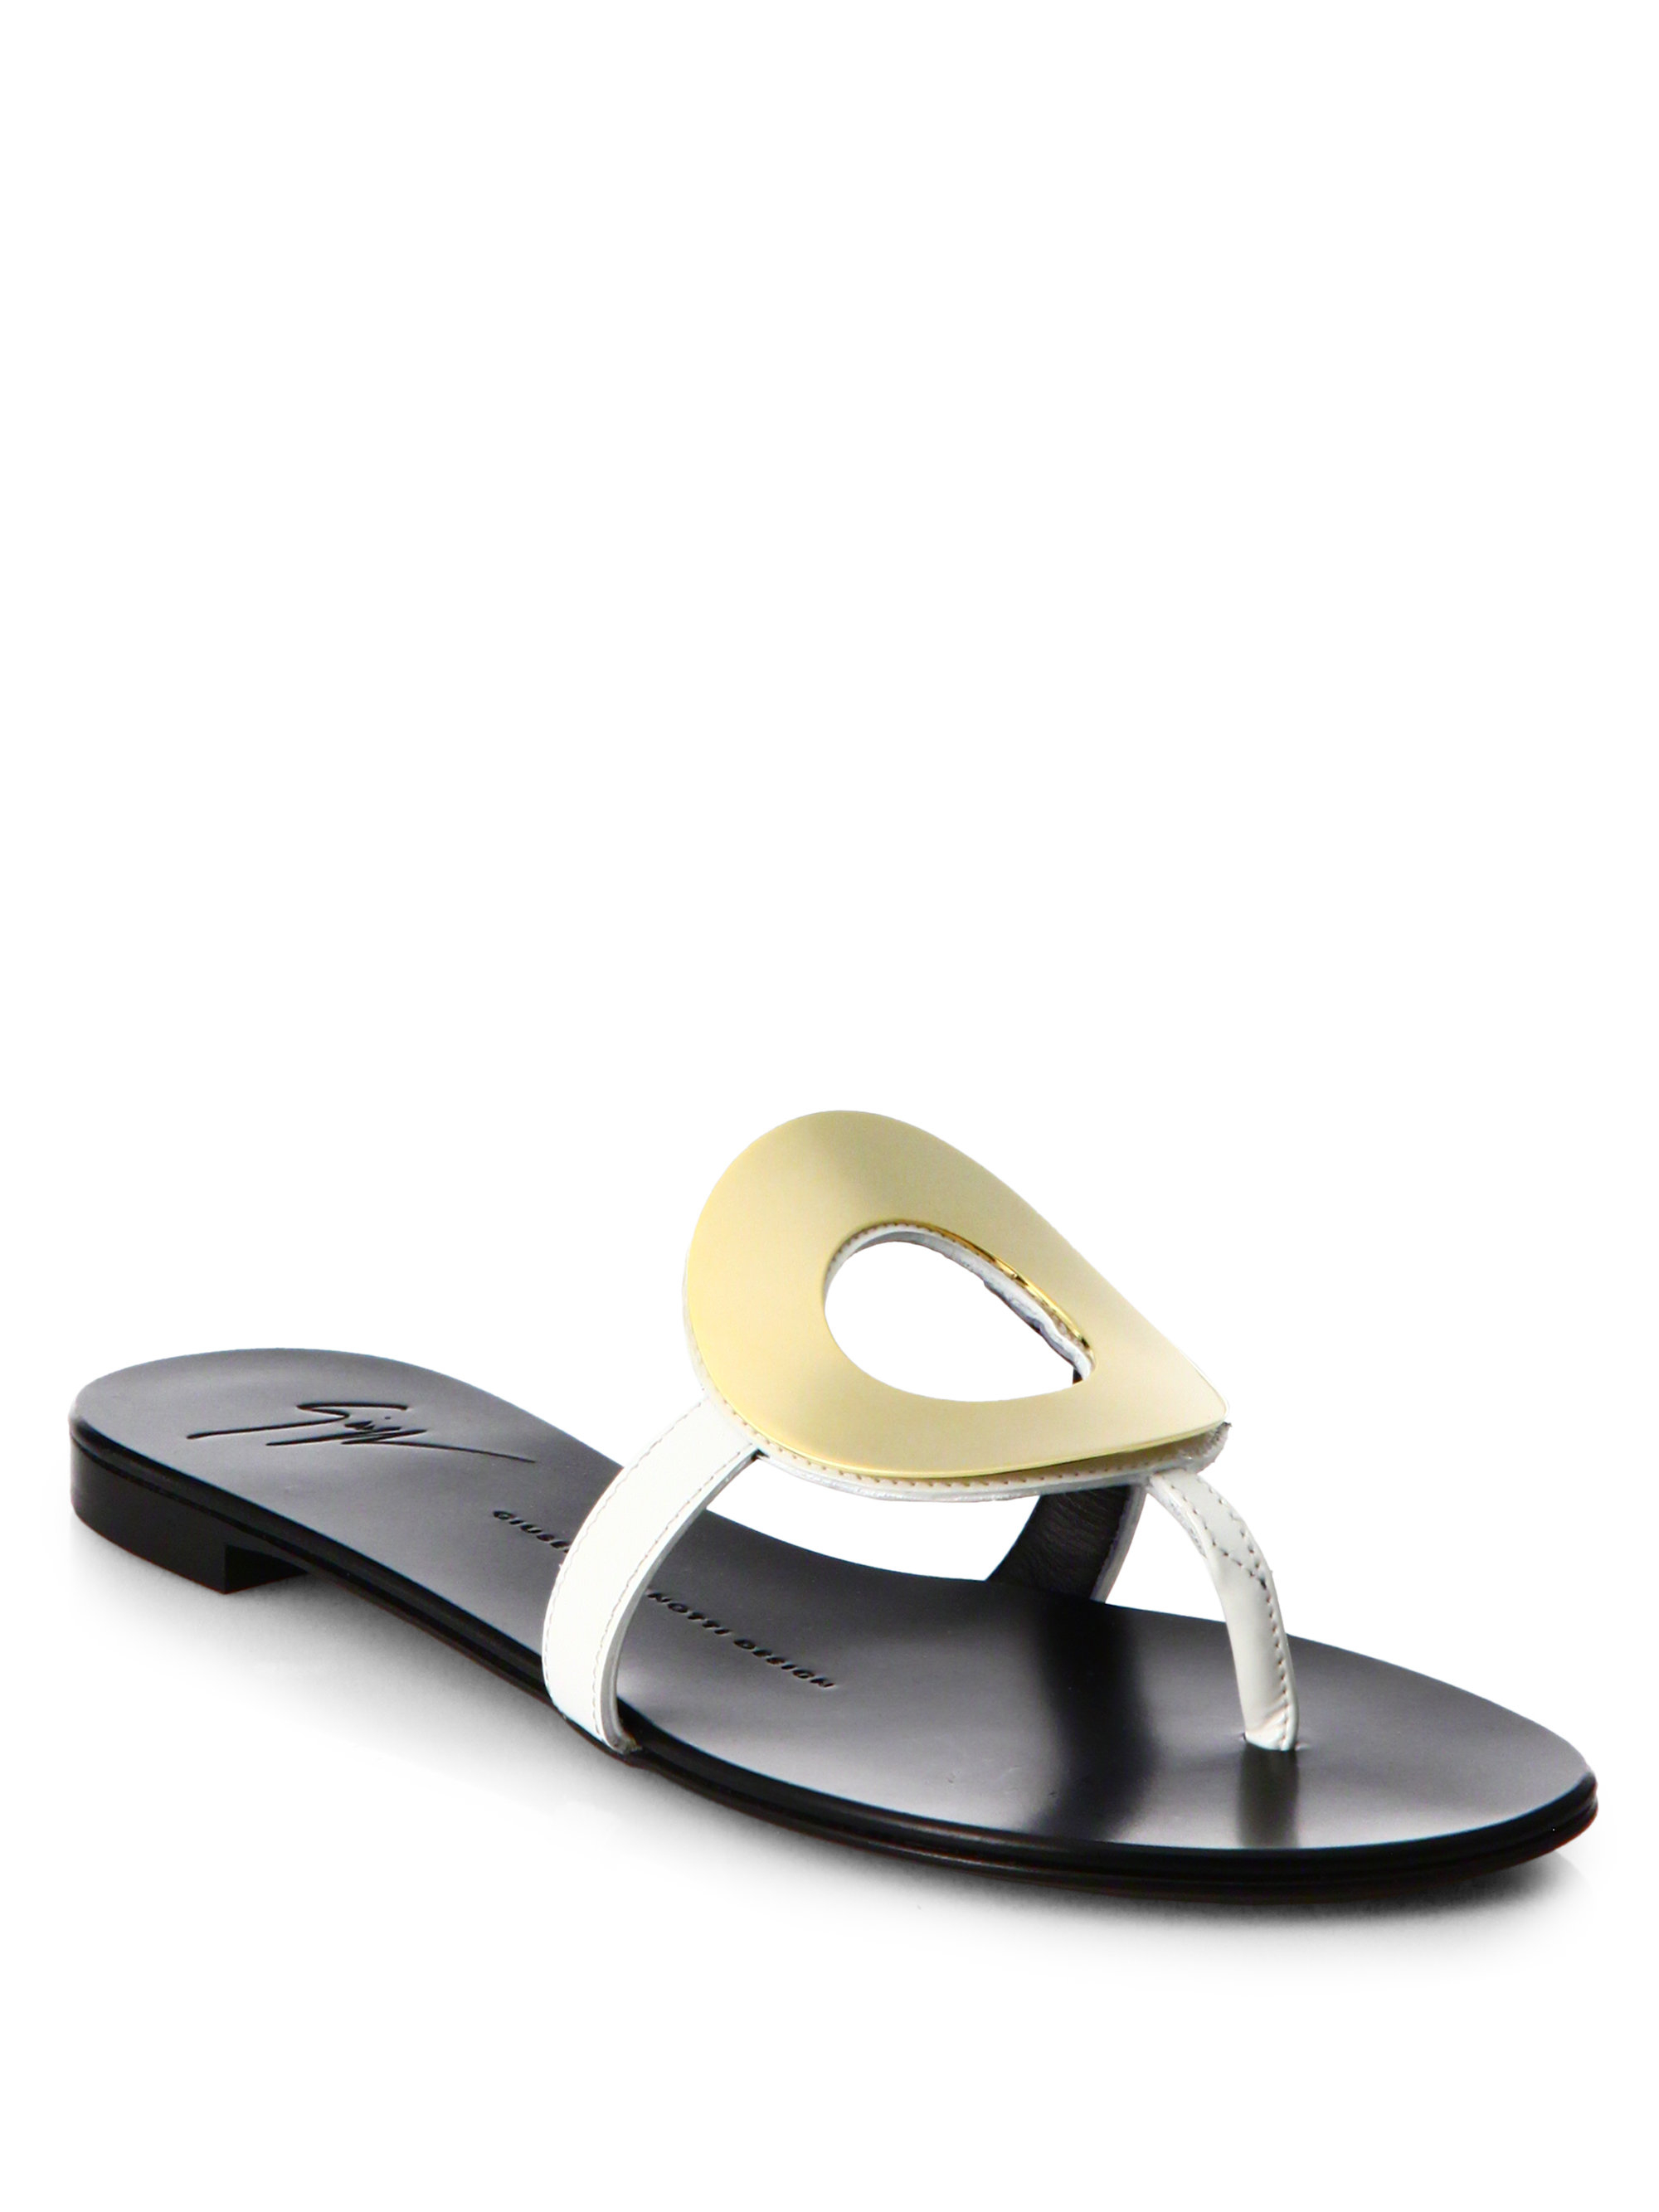 Lyst - Giuseppe Zanotti Gold-Ring Patent Leather Flip -6834